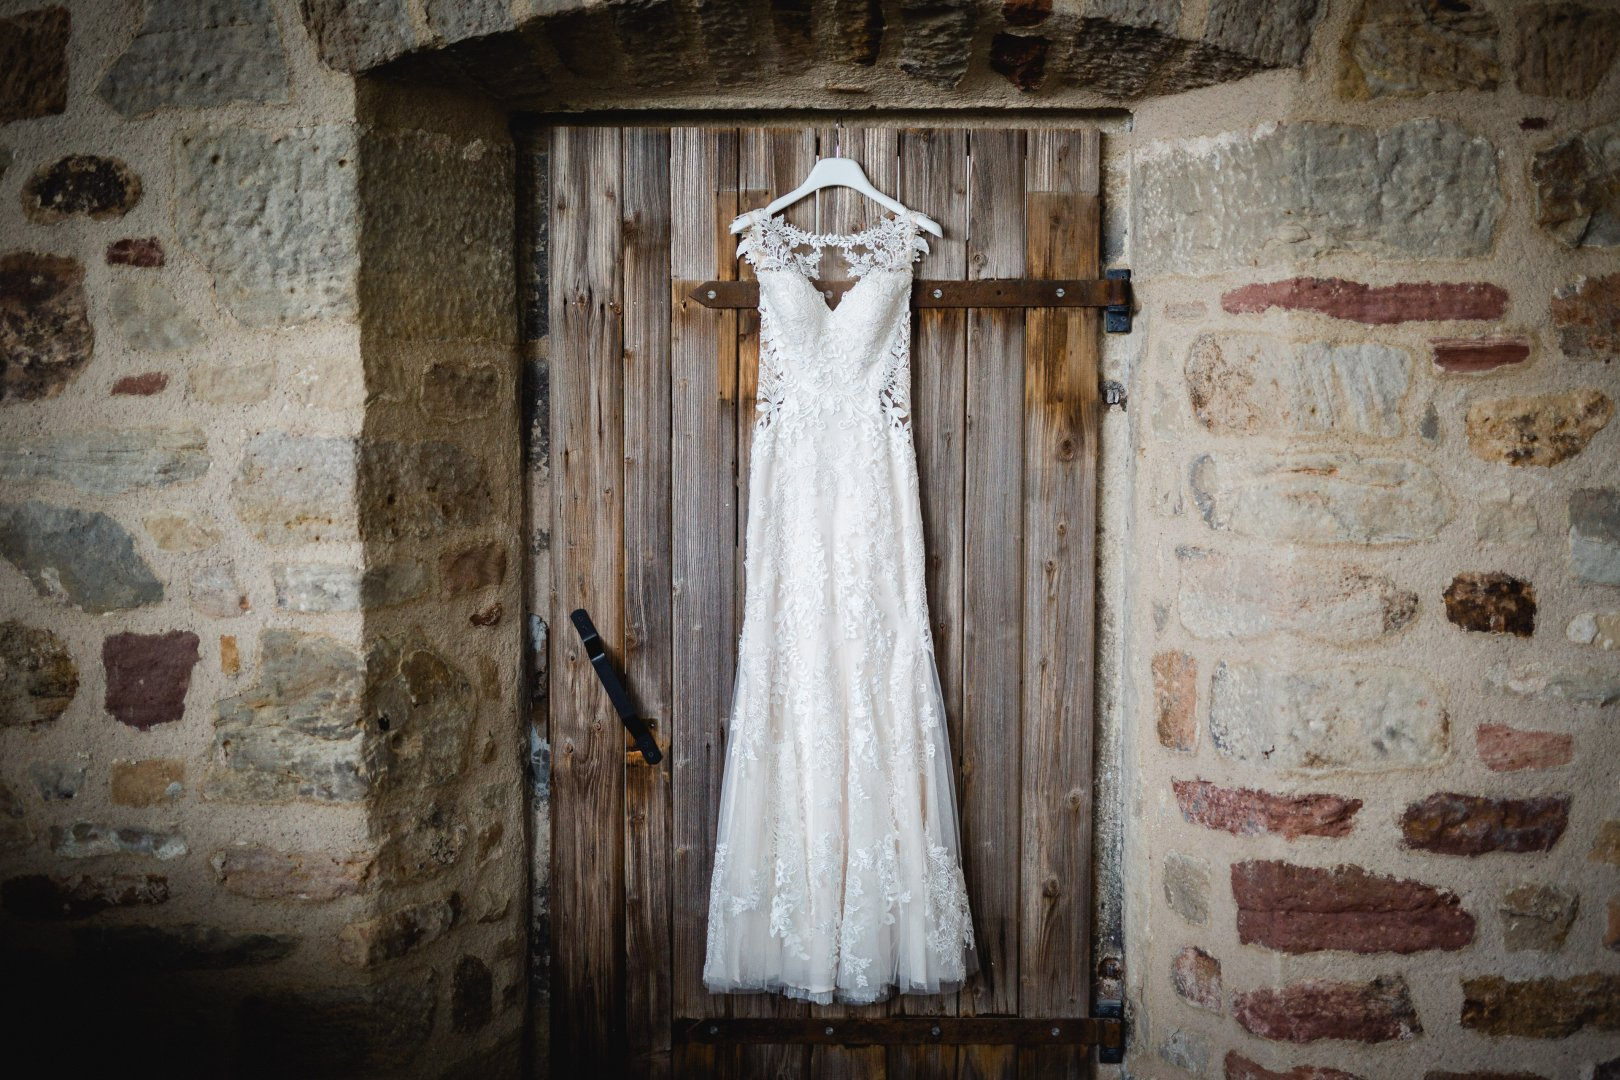 Photograph White Wedding dress Dress Clothing Gown Bridal clothing Bride Wall Fashion Bridal accessory Wood Textile Photography Ceremony Door Window Stock photography House Veil Formal wear Wedding Chapel Lace Bridal party dress Building